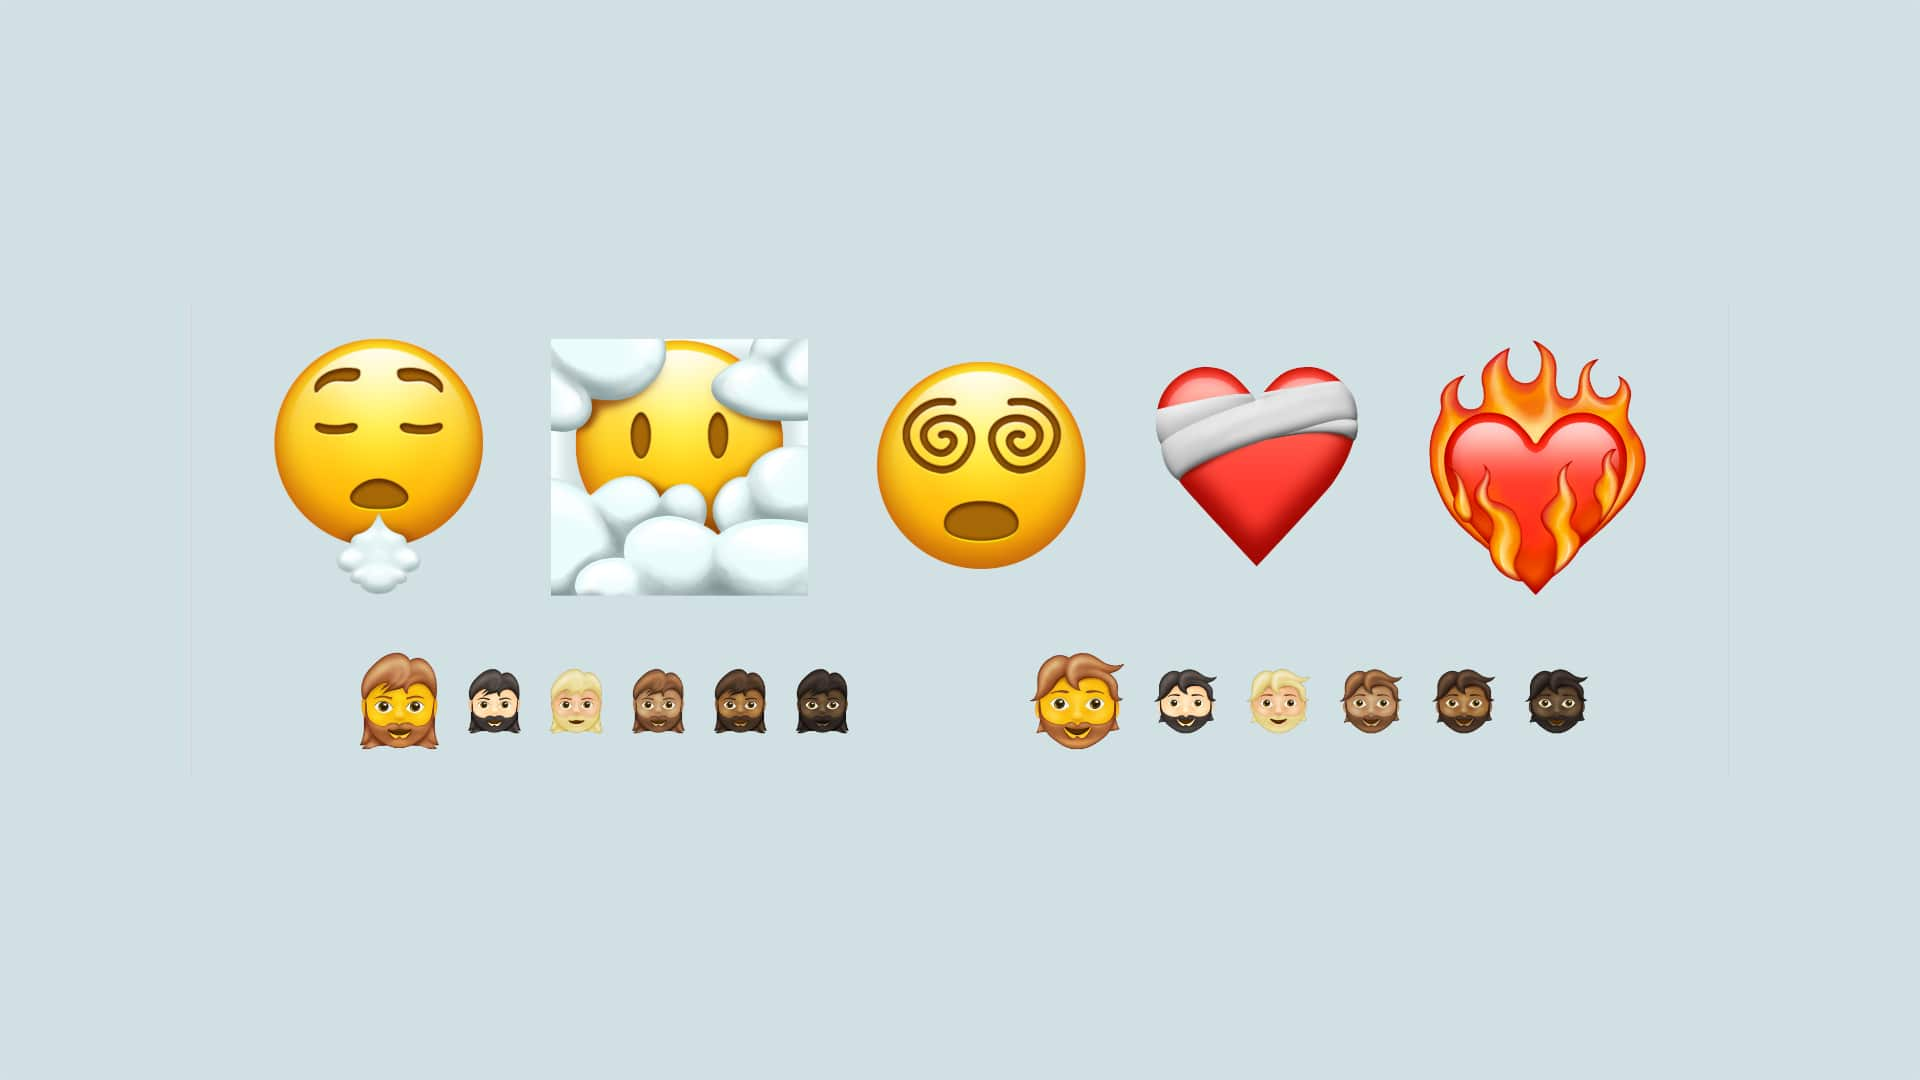 217 New Emojis In Final List For 2021